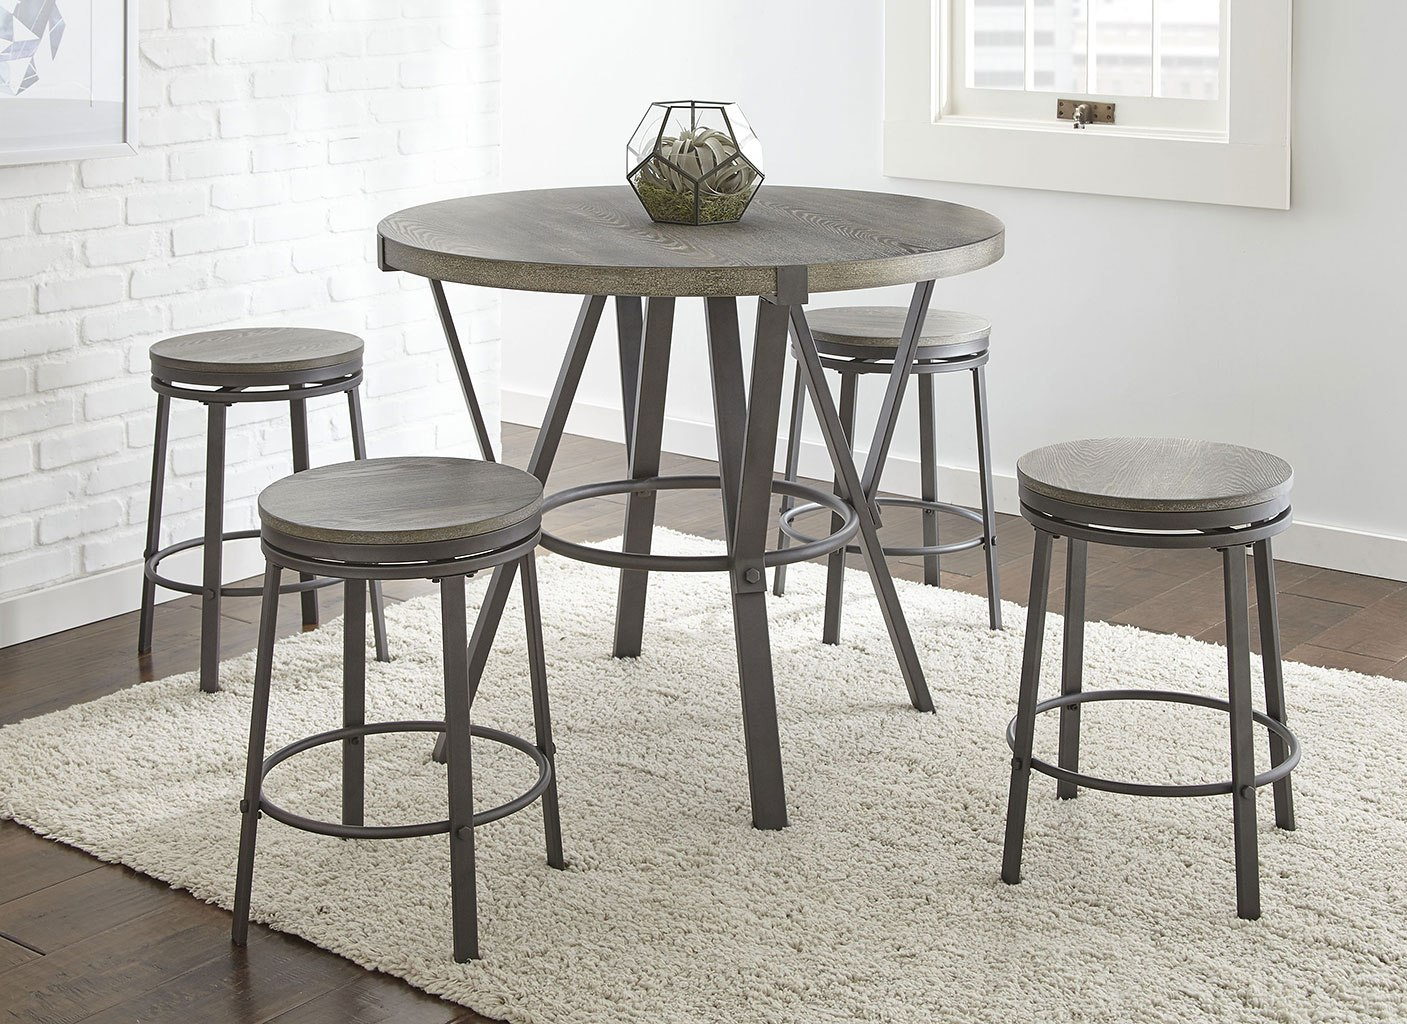 Surprising Portland Round Counter Height Dining Set Gmtry Best Dining Table And Chair Ideas Images Gmtryco